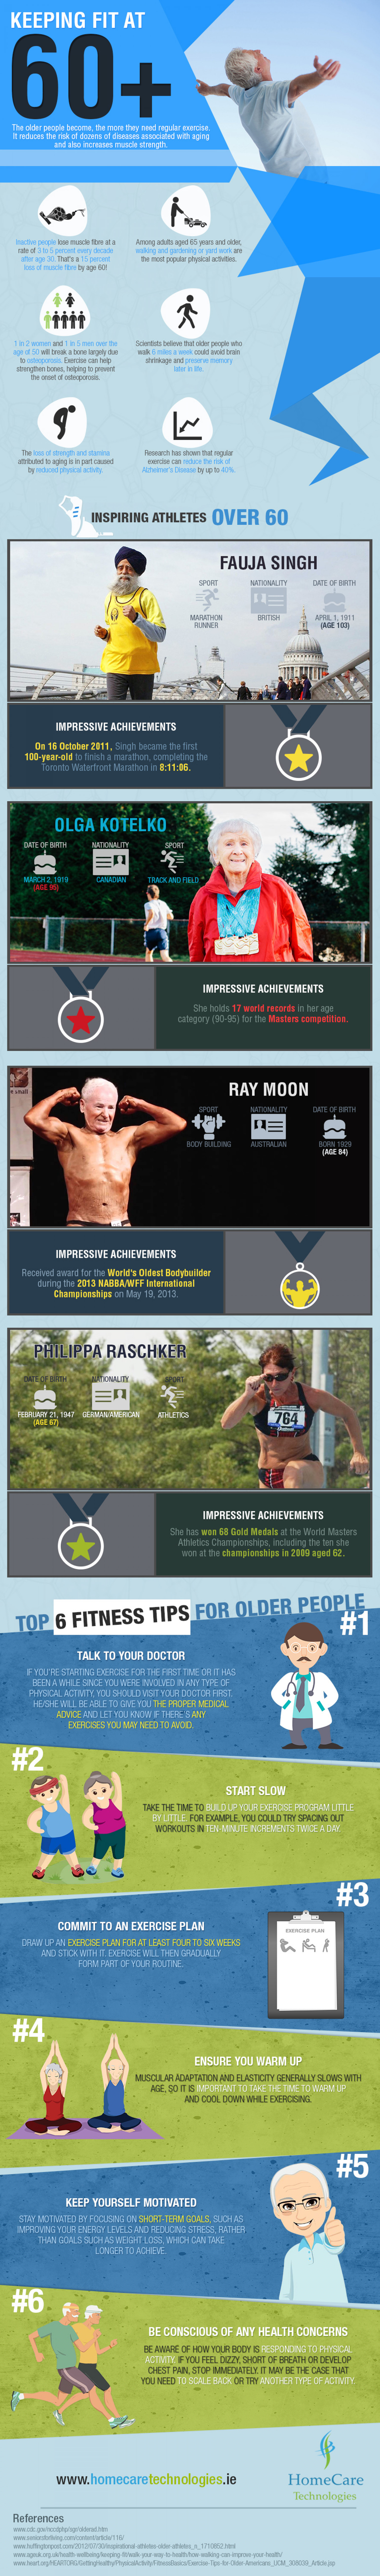 Keeping Fit at 60+ Infographic